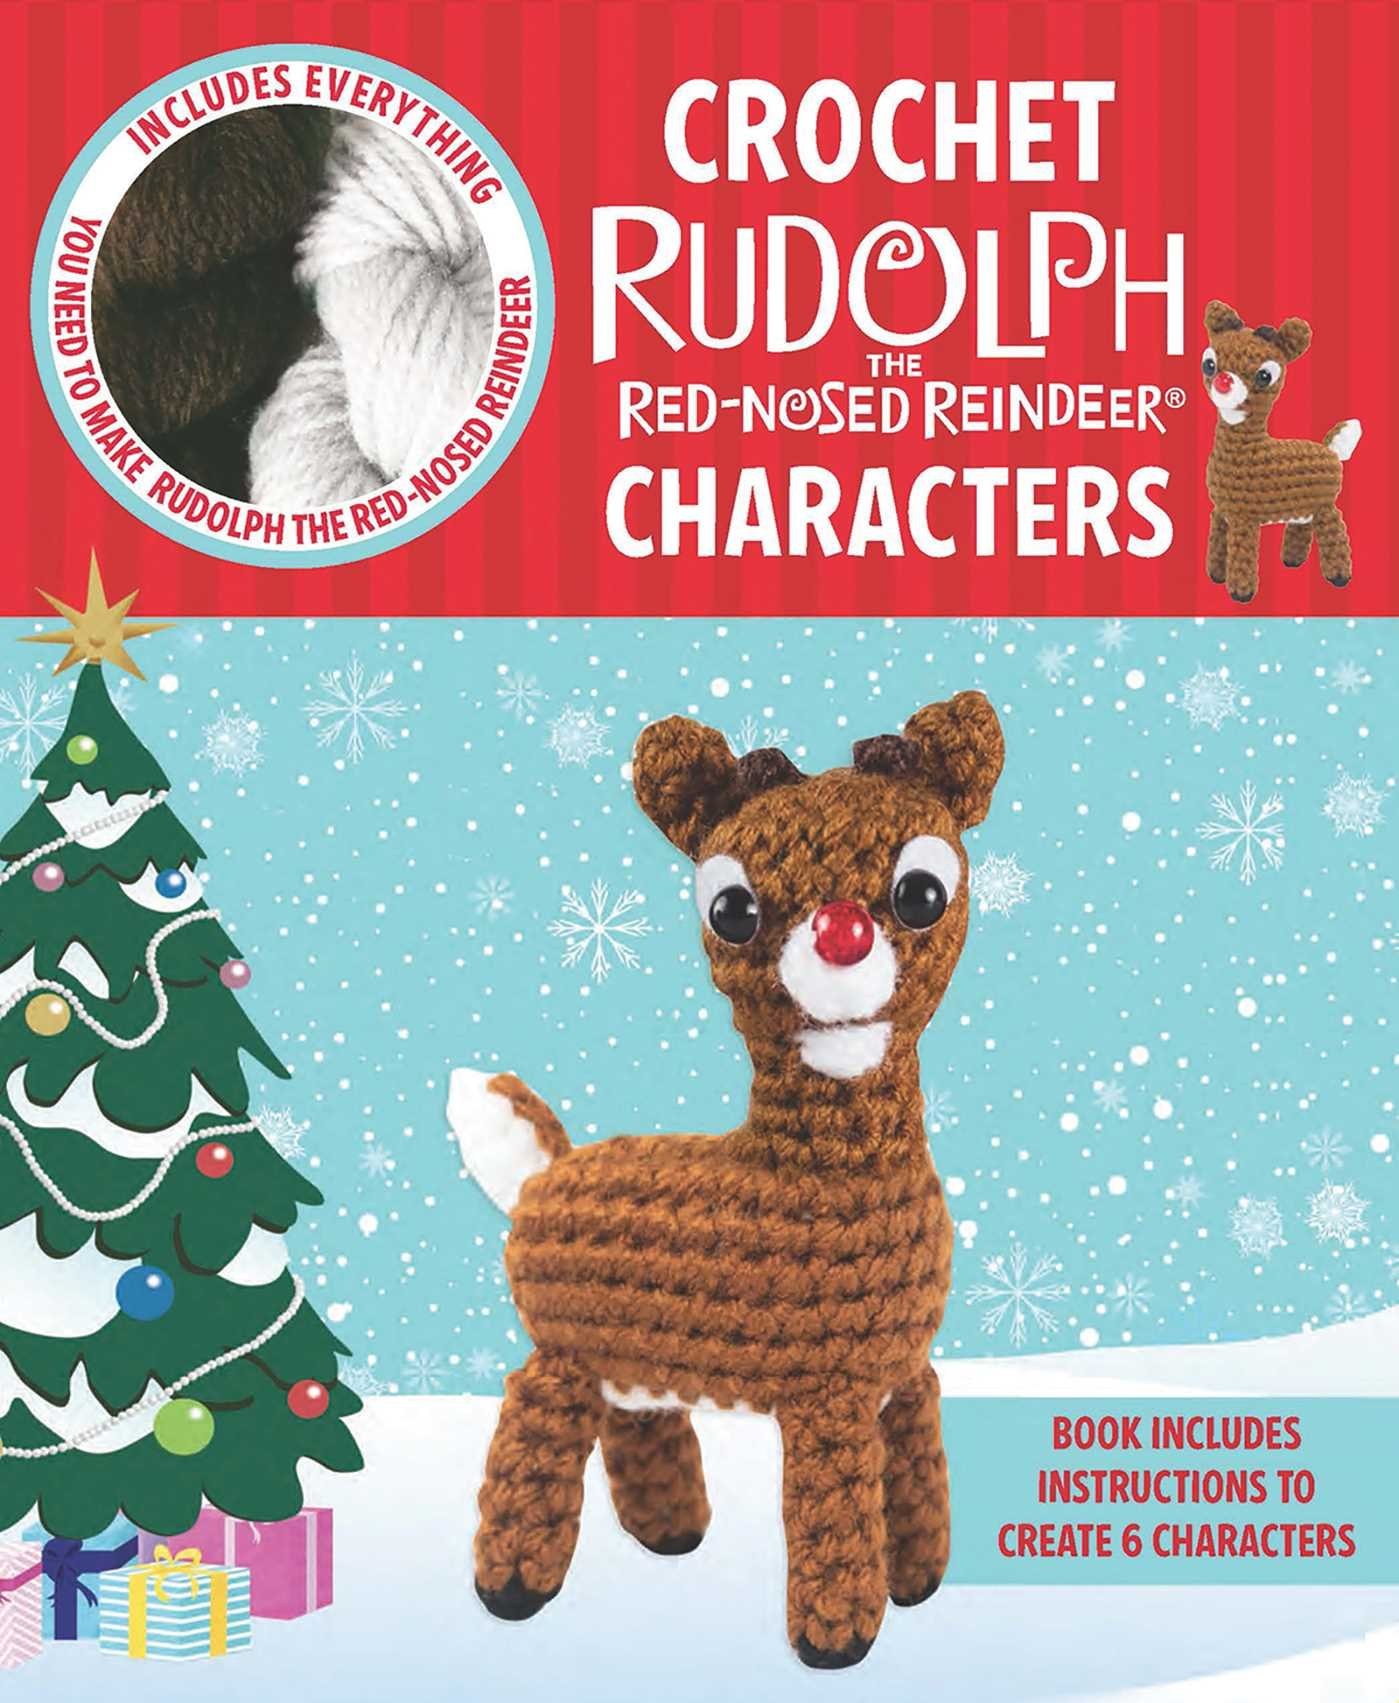 Crochet Rudolph the Red-Nosed Reindeer Characters (Crochet Kits ...